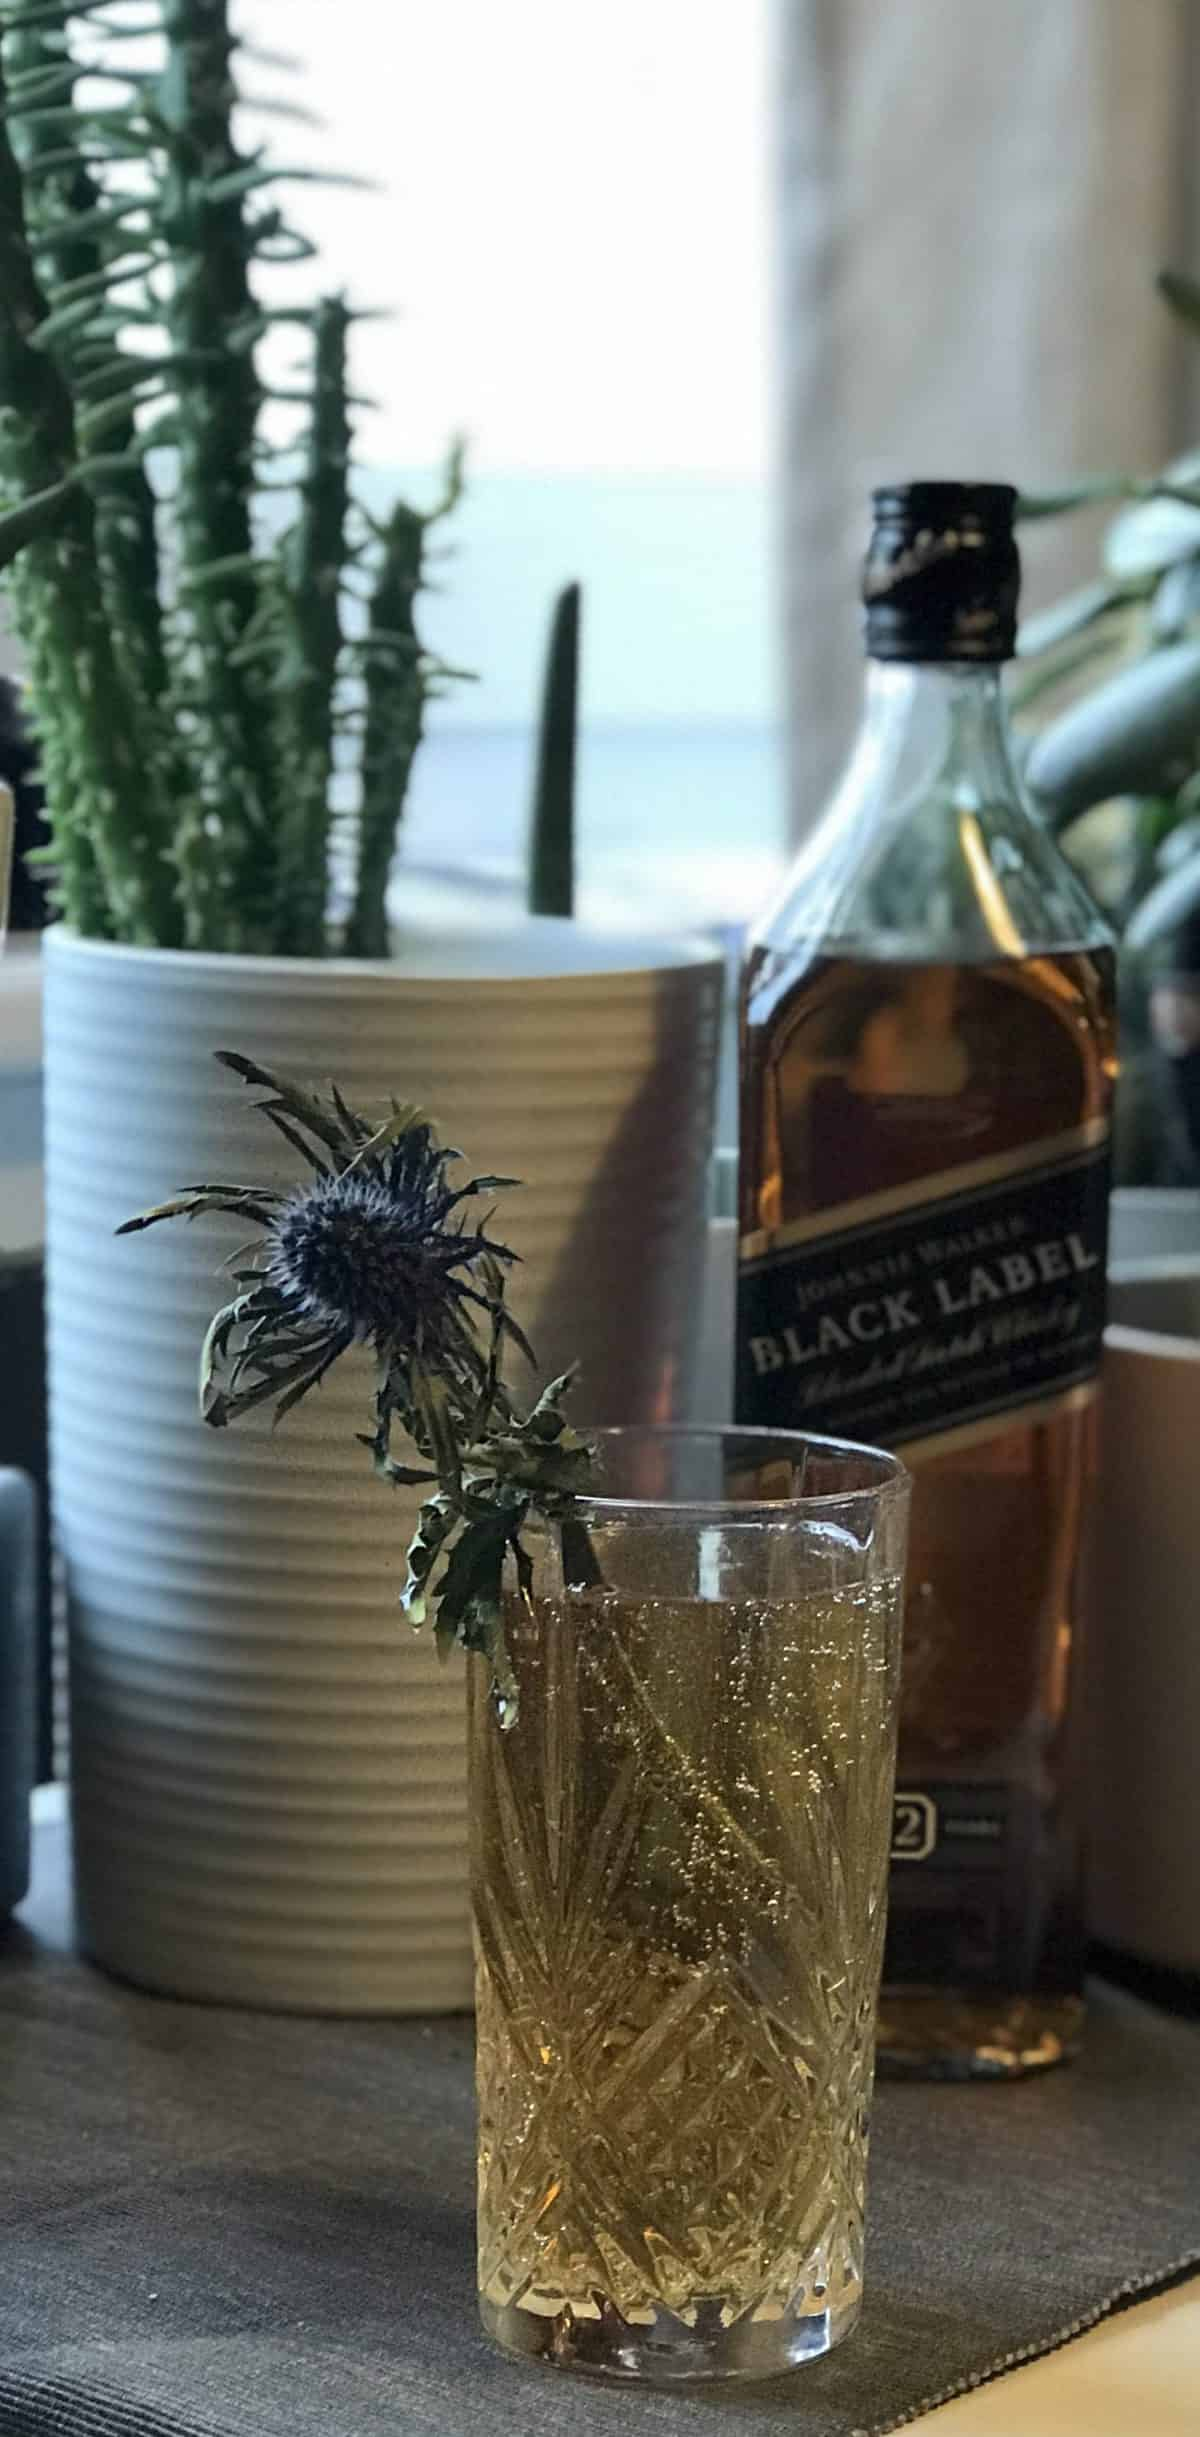 johnnie walker black label scottish highball cocktail